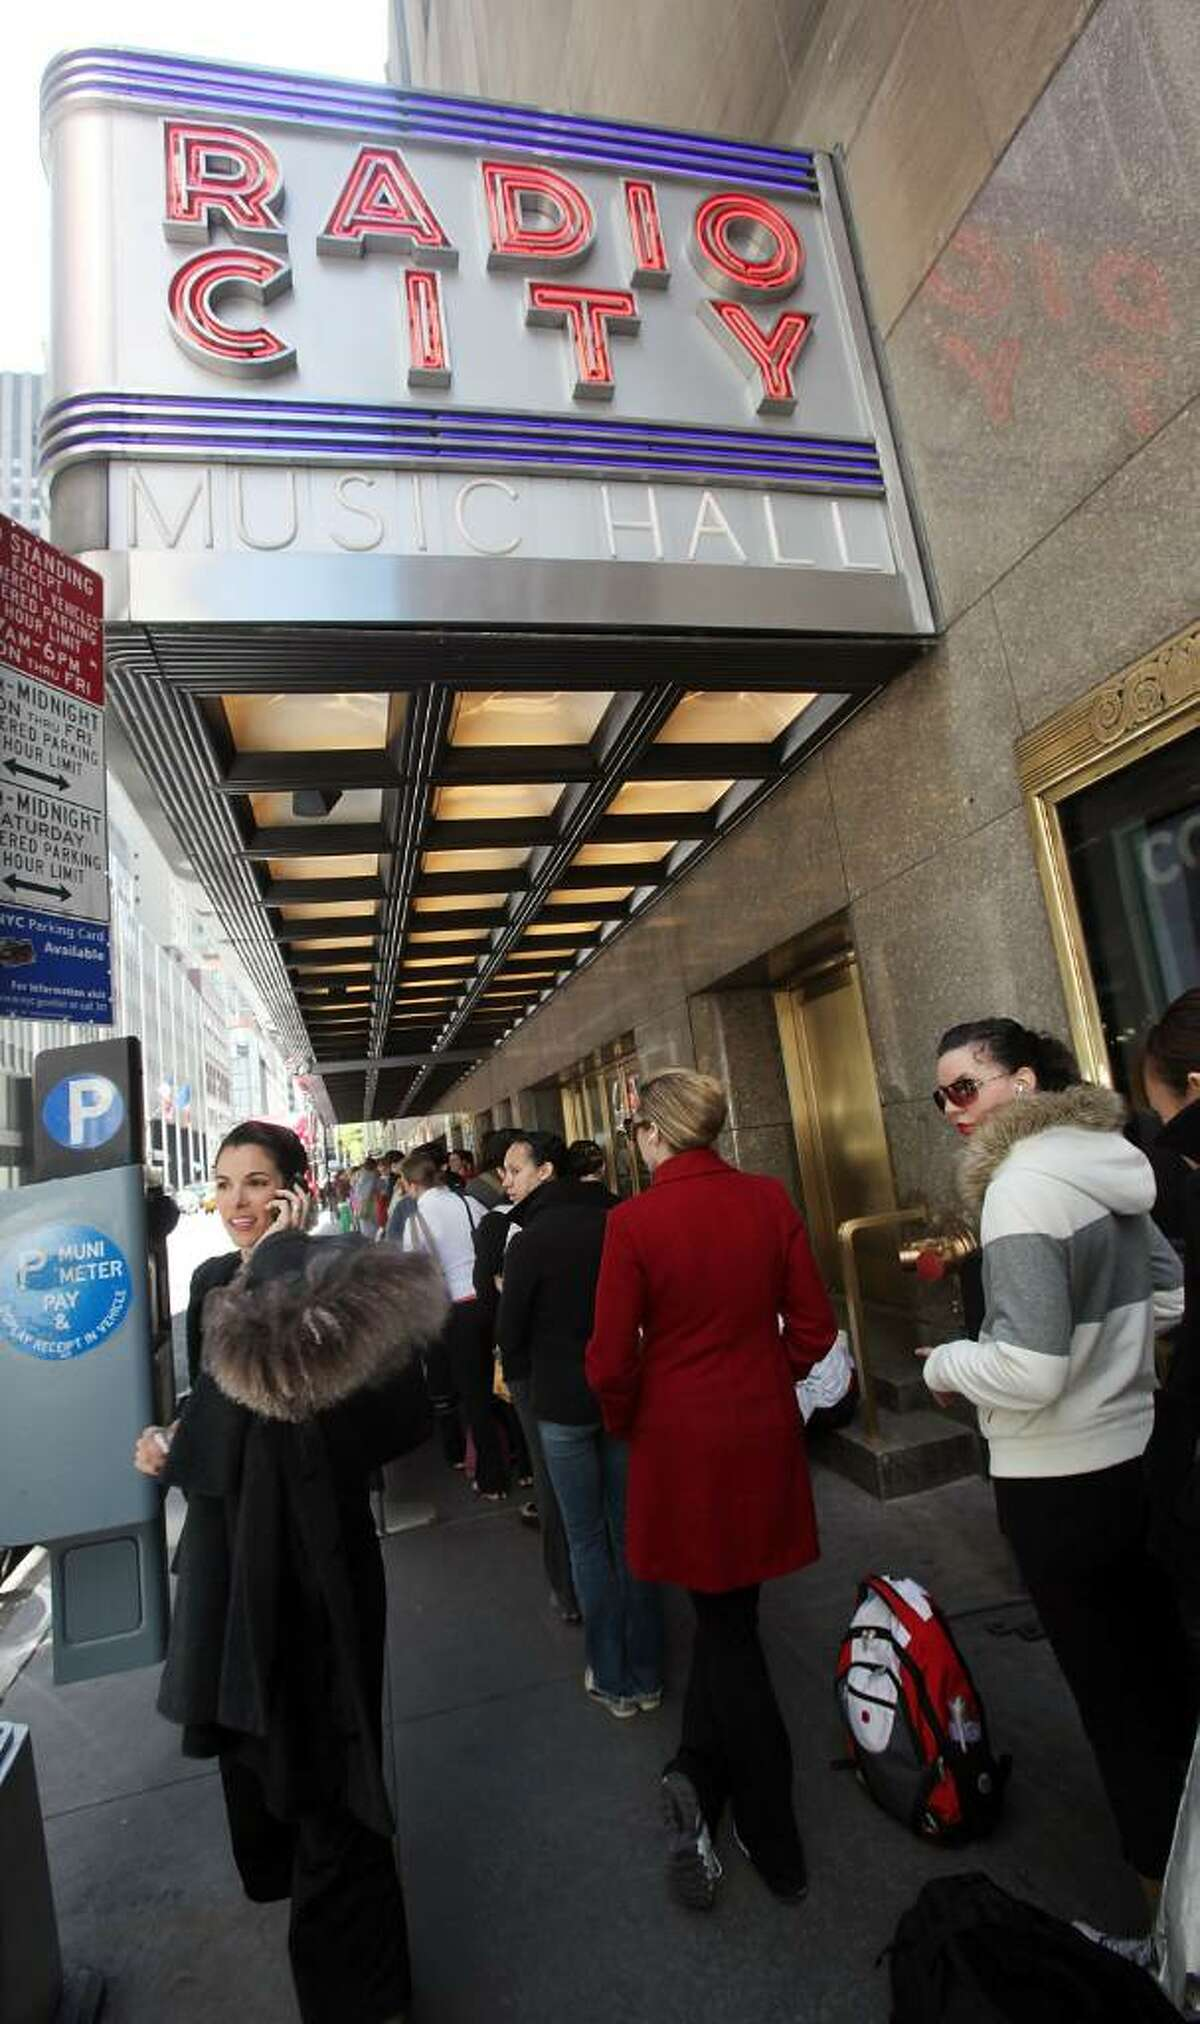 NEW YORK - APRIL 29: Aspiring dancers wait in line to audition for a coveted position as a Radio City Rockette April 29, 2010 in New York City. Hundreds of females waited in line for the chance to perform in the 2010 production of the Radio City Music Spectacular. (Photo by Mario Tama/Getty Images)